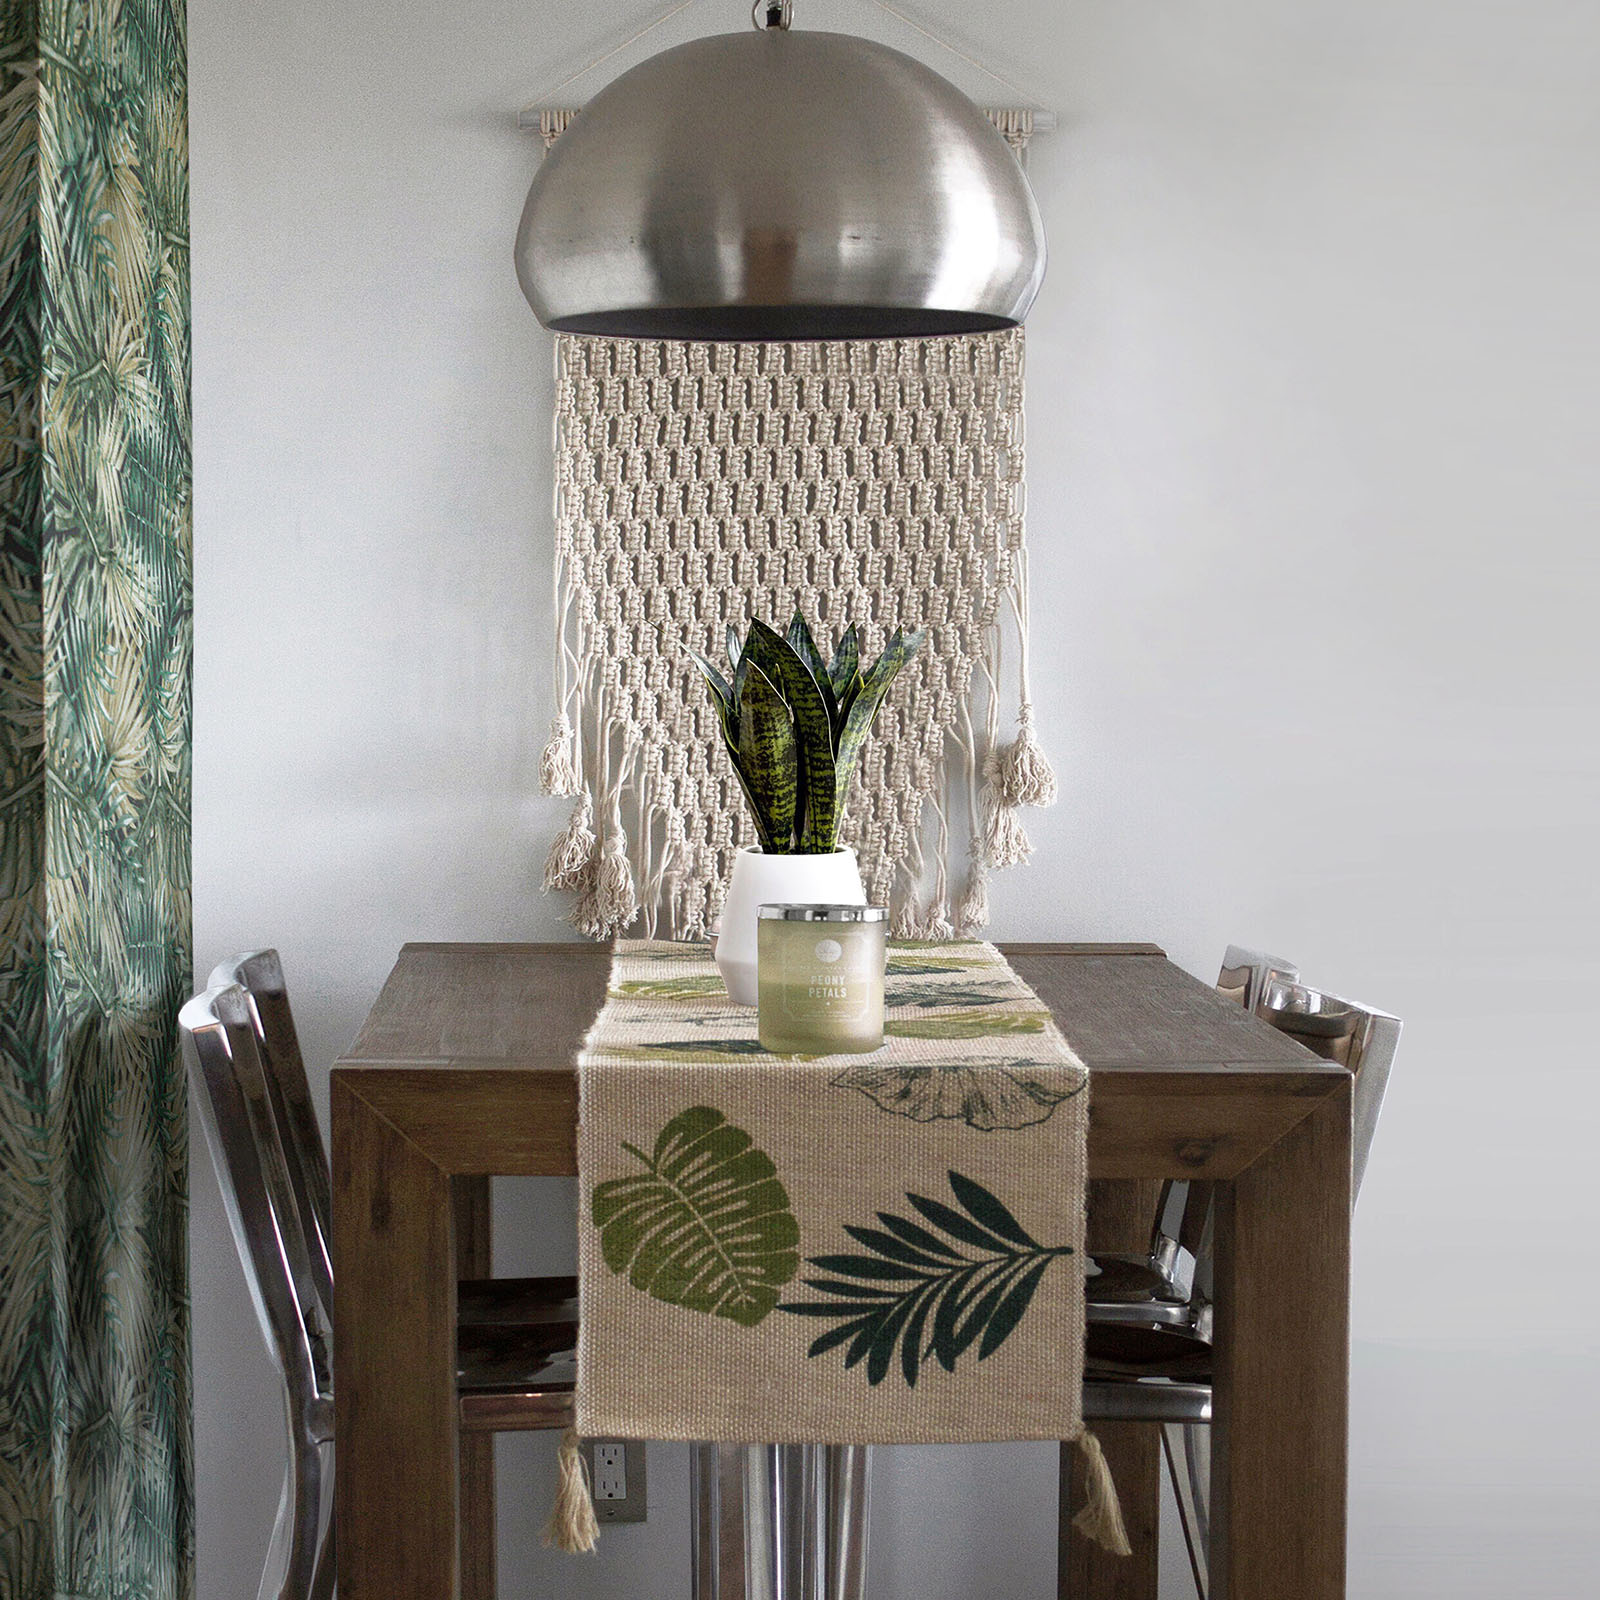 Home Items: #1 Handmade Printed Hemp Table Throw For Environment